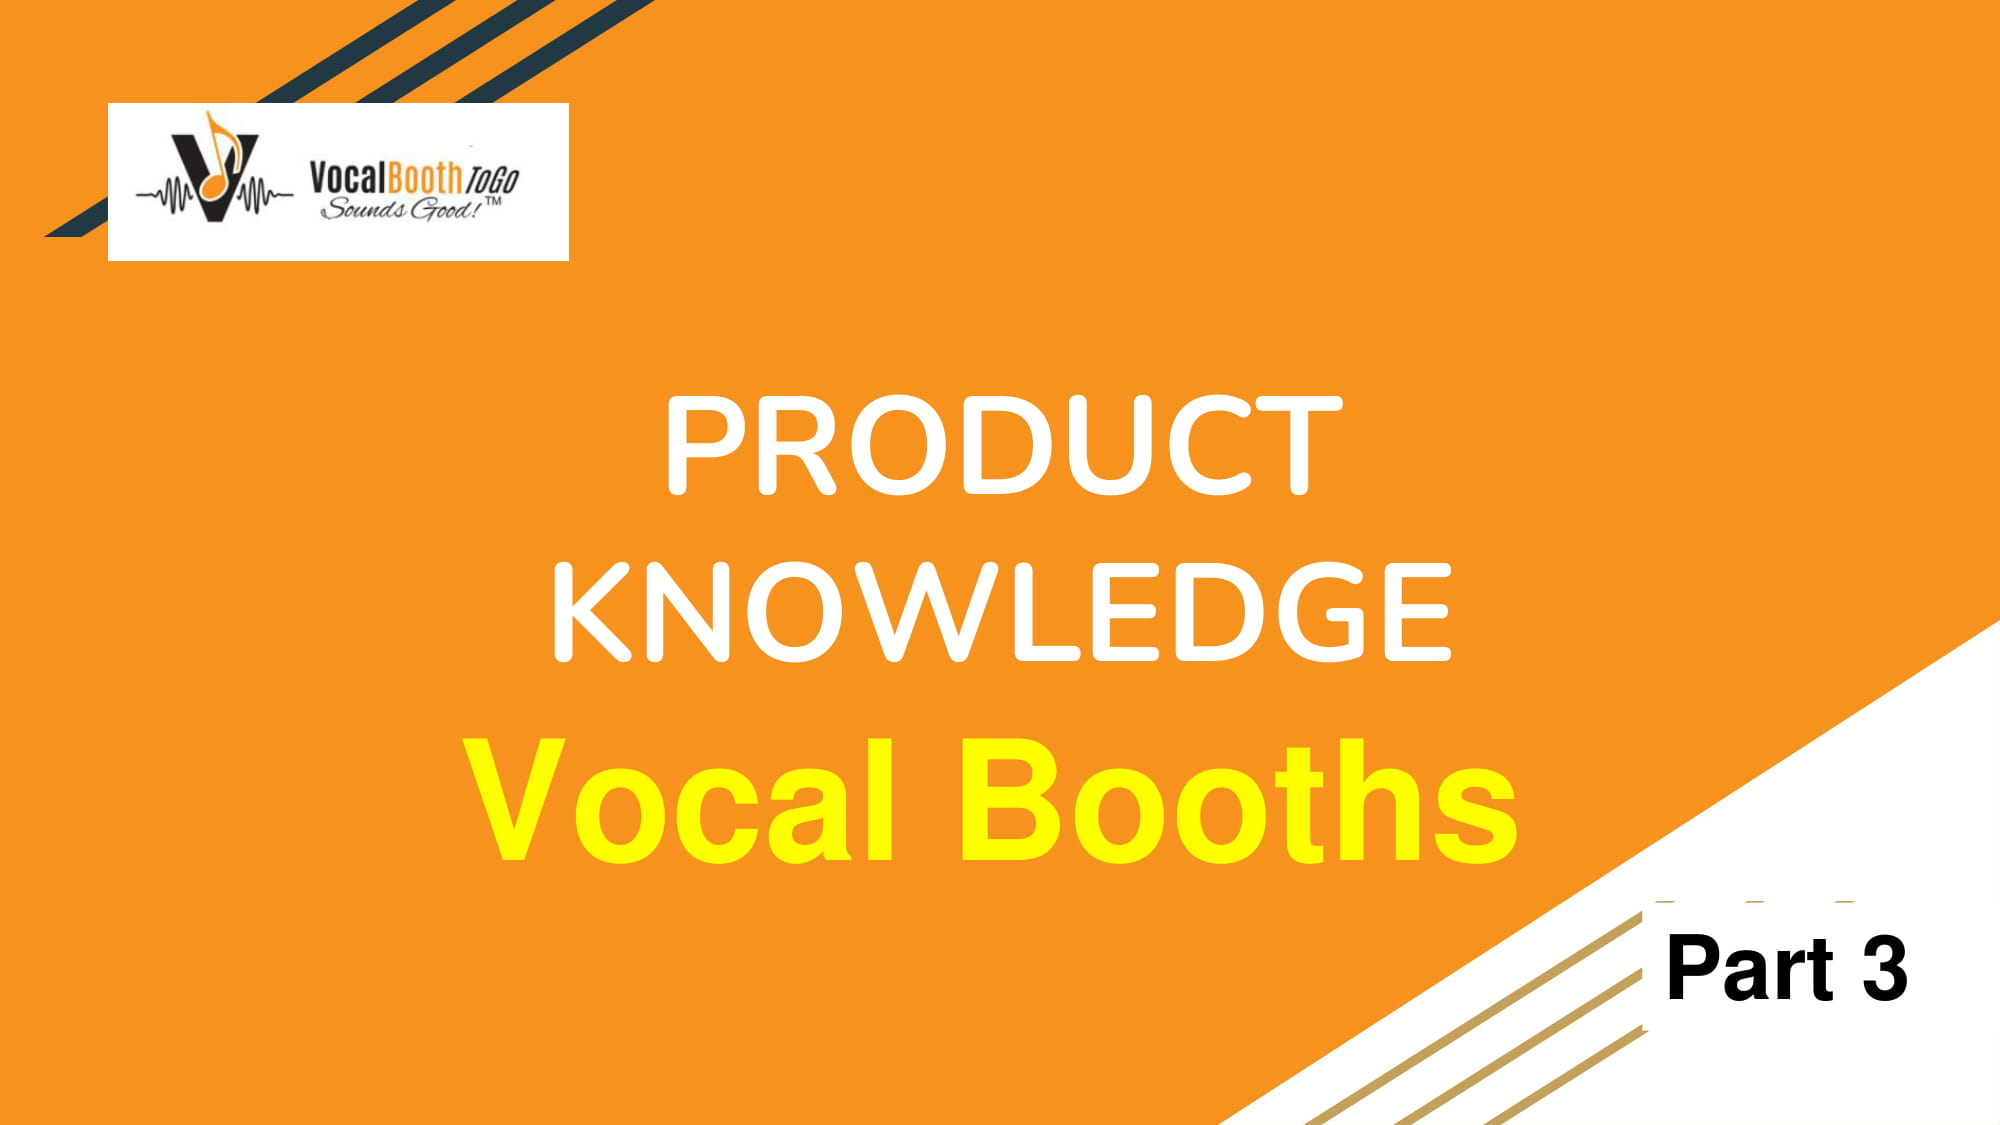 PRODUCT KNOWLEDGE Vocal Booths